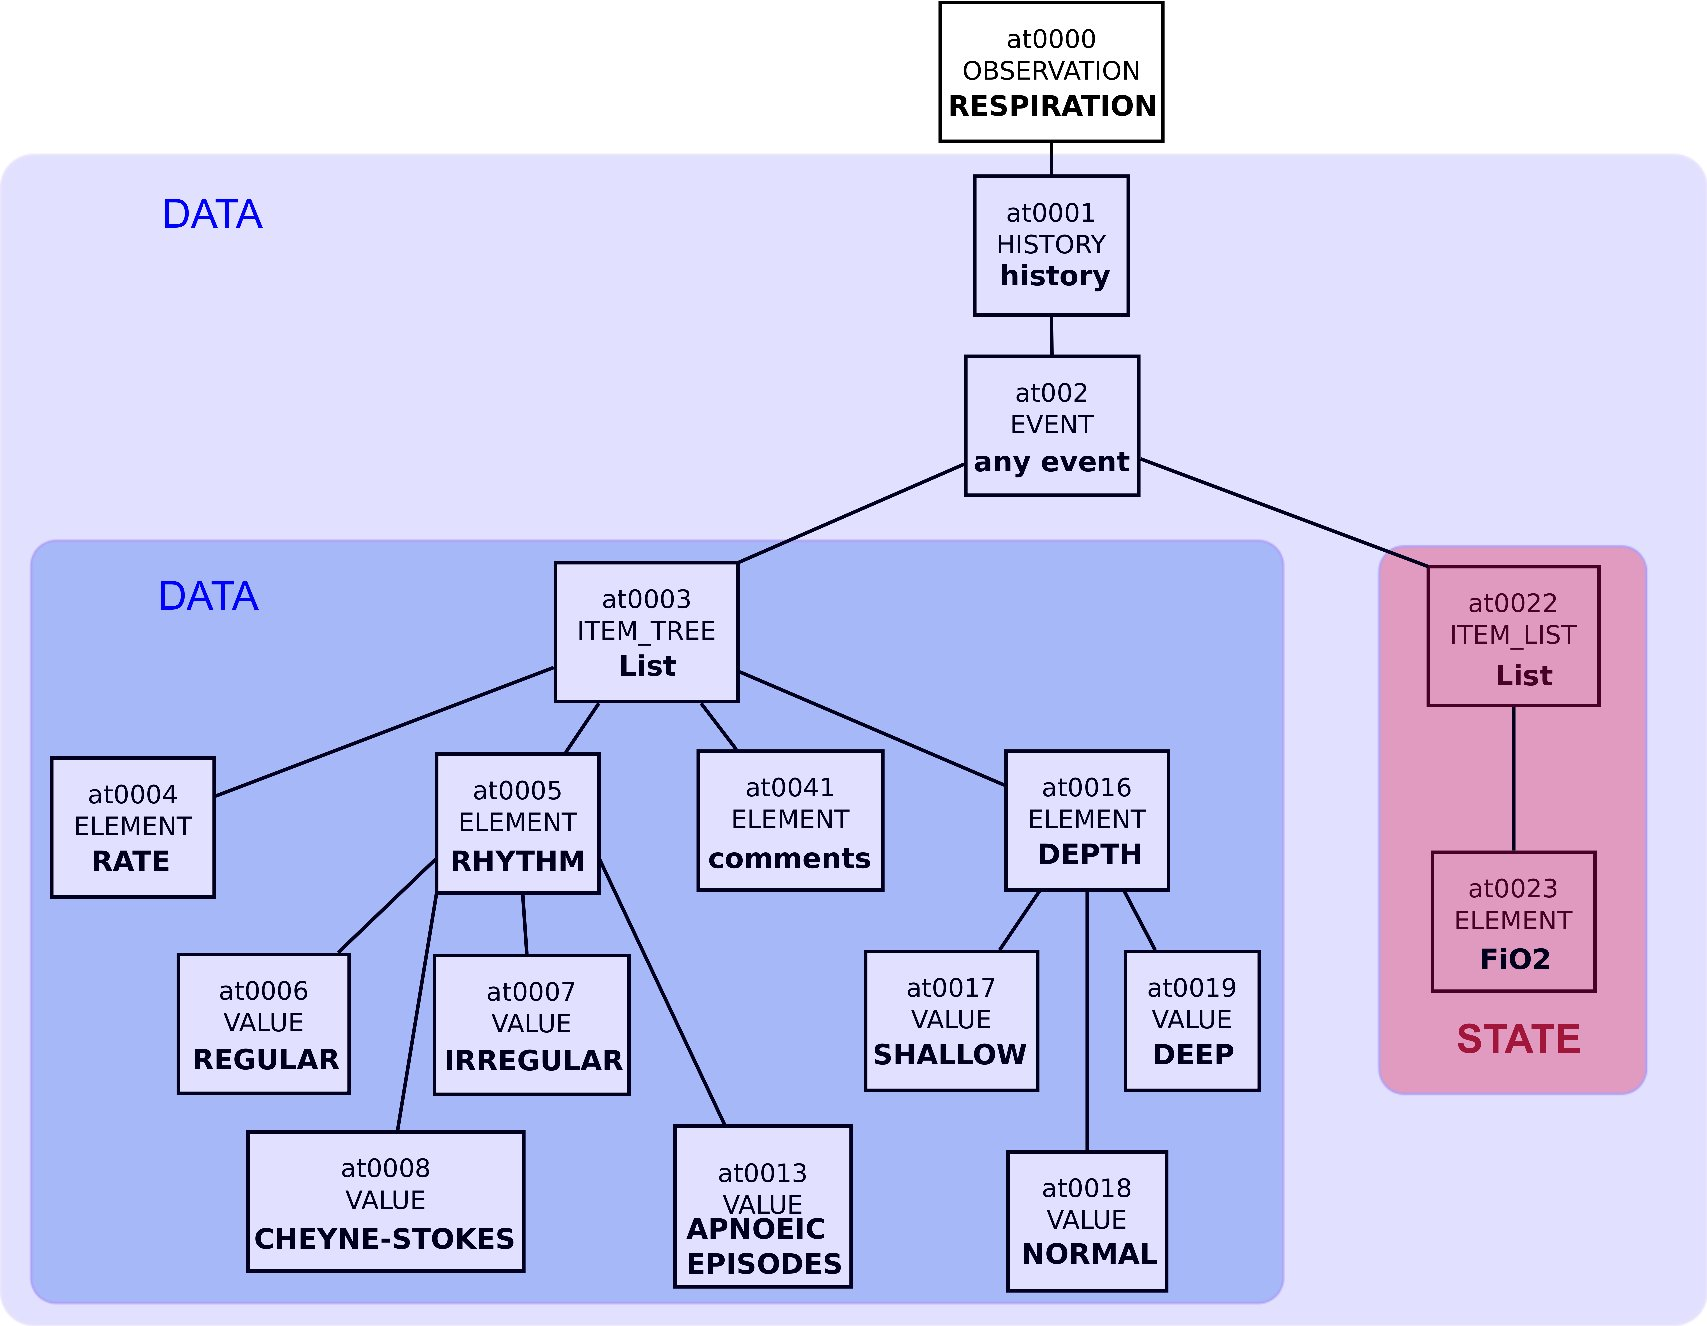 Semantic Similarity-based Alignment between Clinical Archetypes and